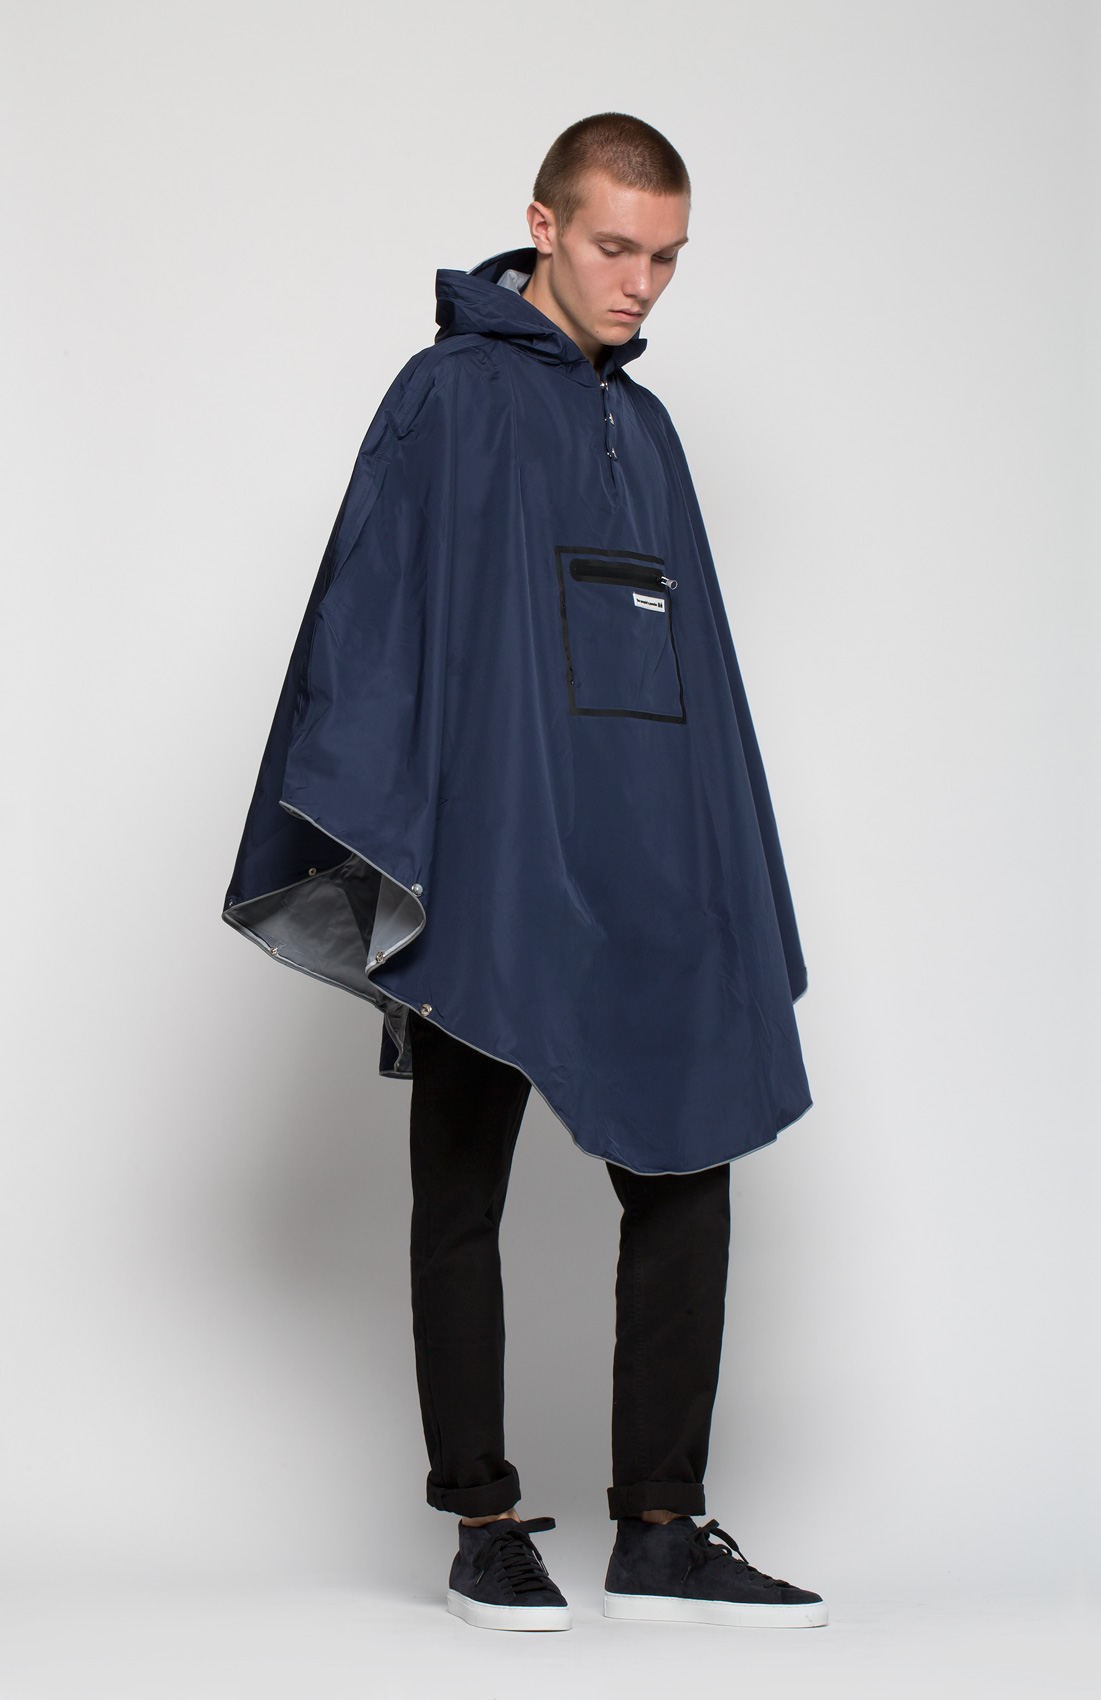 OPUMO-Peoples-Ponchos-Blue